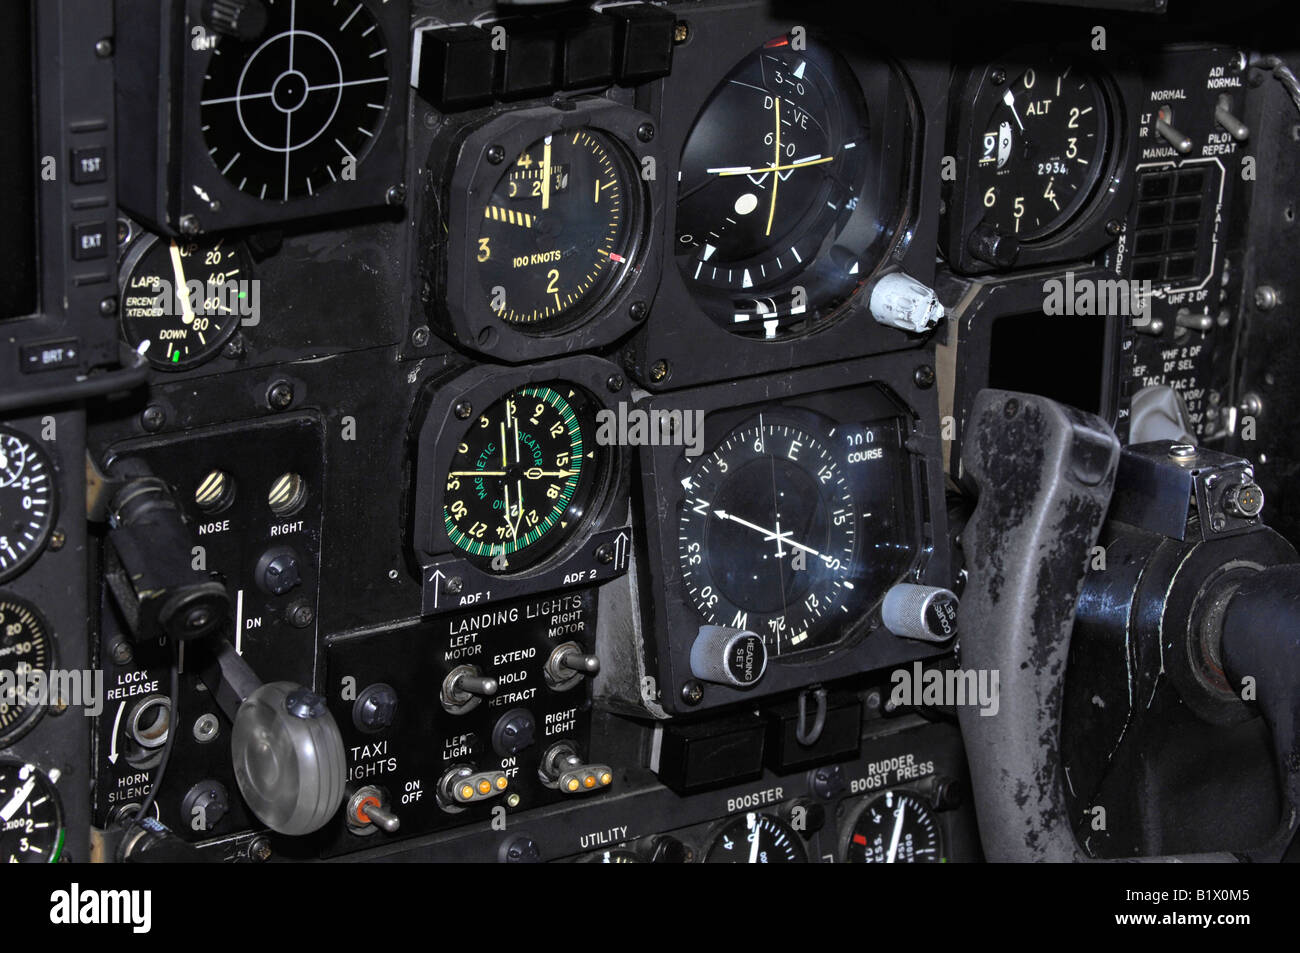 Airplane instrument panel showing pilot controls including navigation equipment, landing gear switch and control - Stock Image